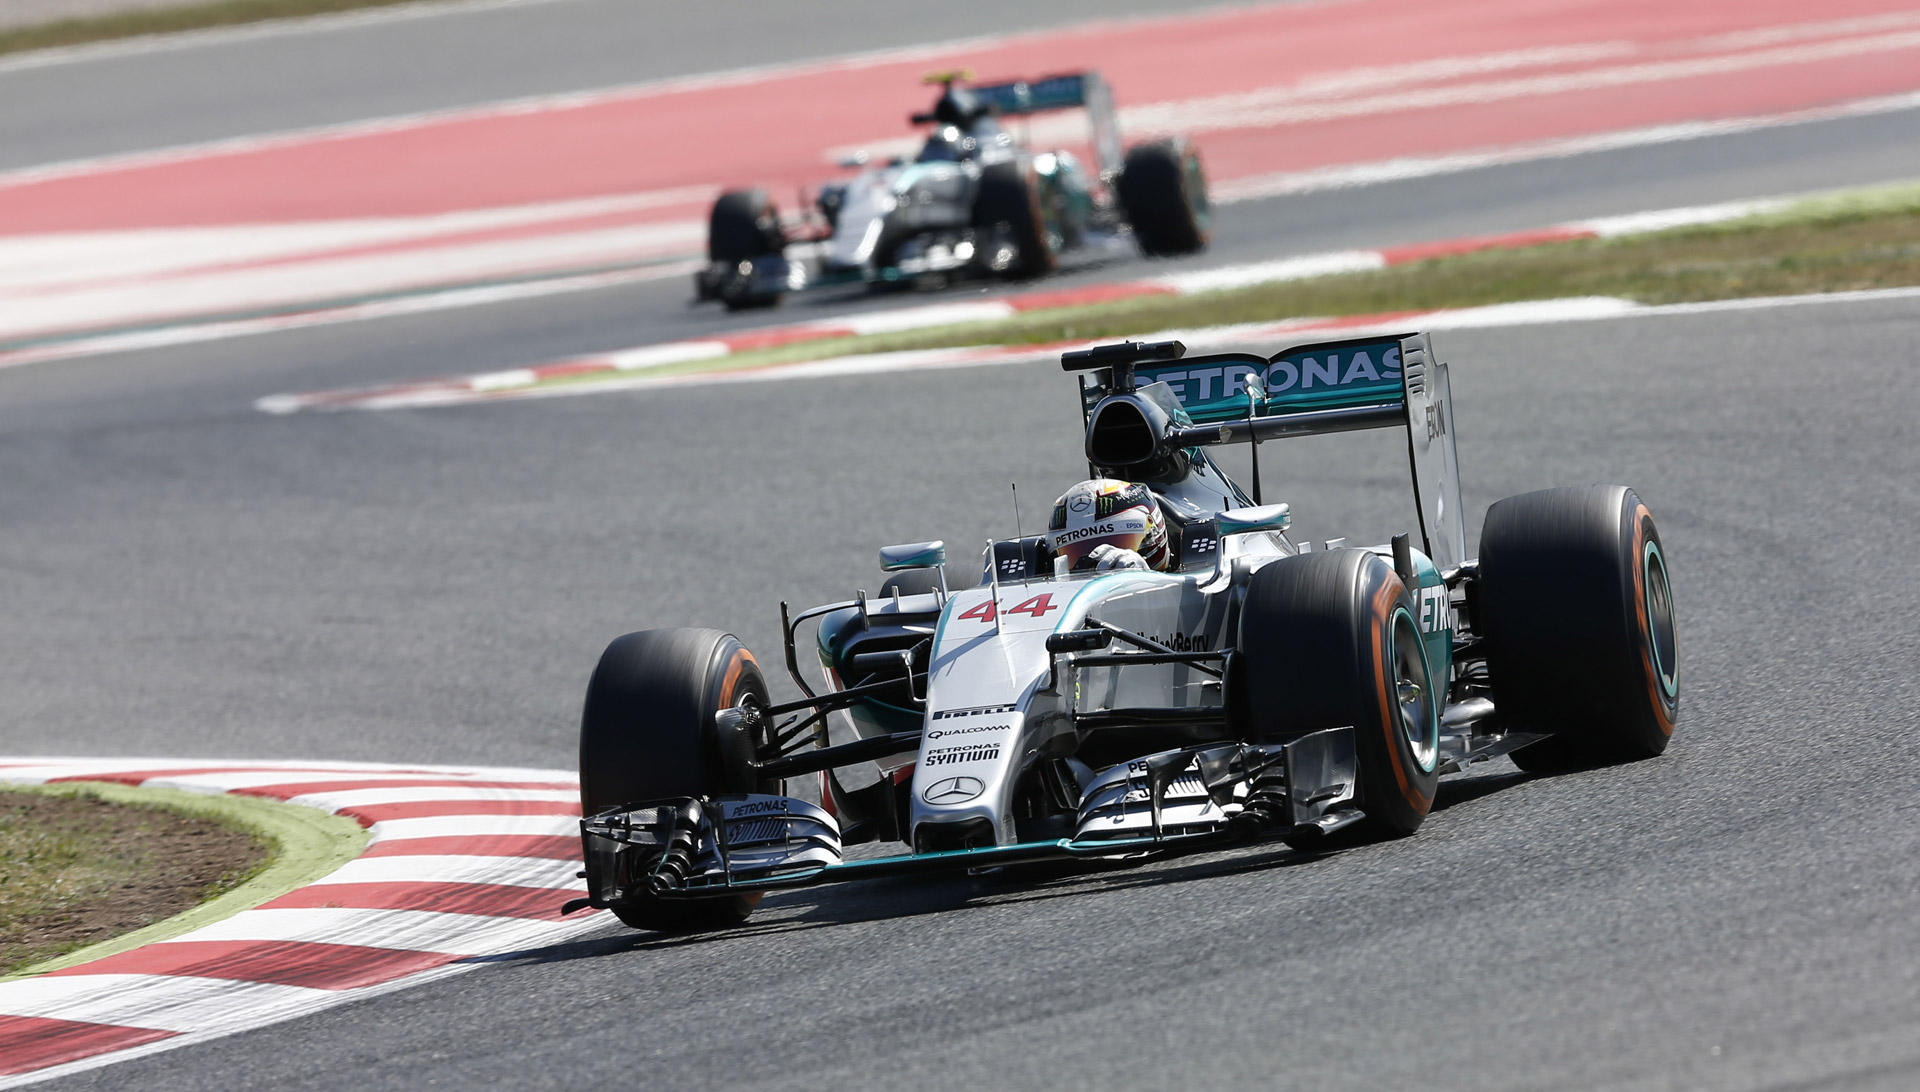 mercedes-amg-at-the-2015-formula-one-spanish-grand-prix_100510130_h.jpg